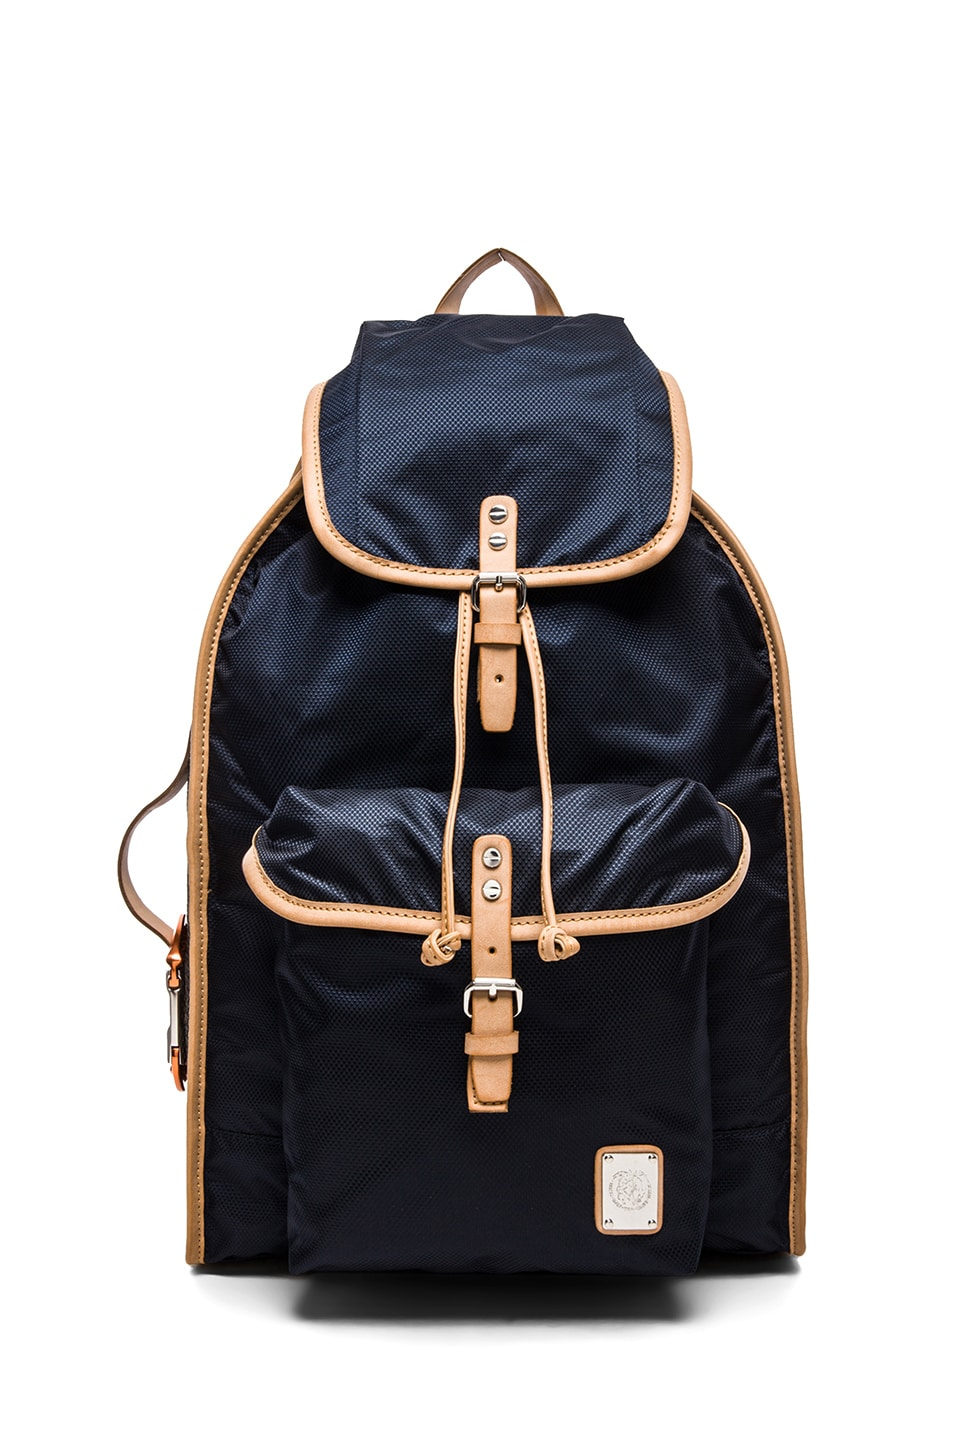 Diesel Holiday Trip K2 Backpack in India Ink